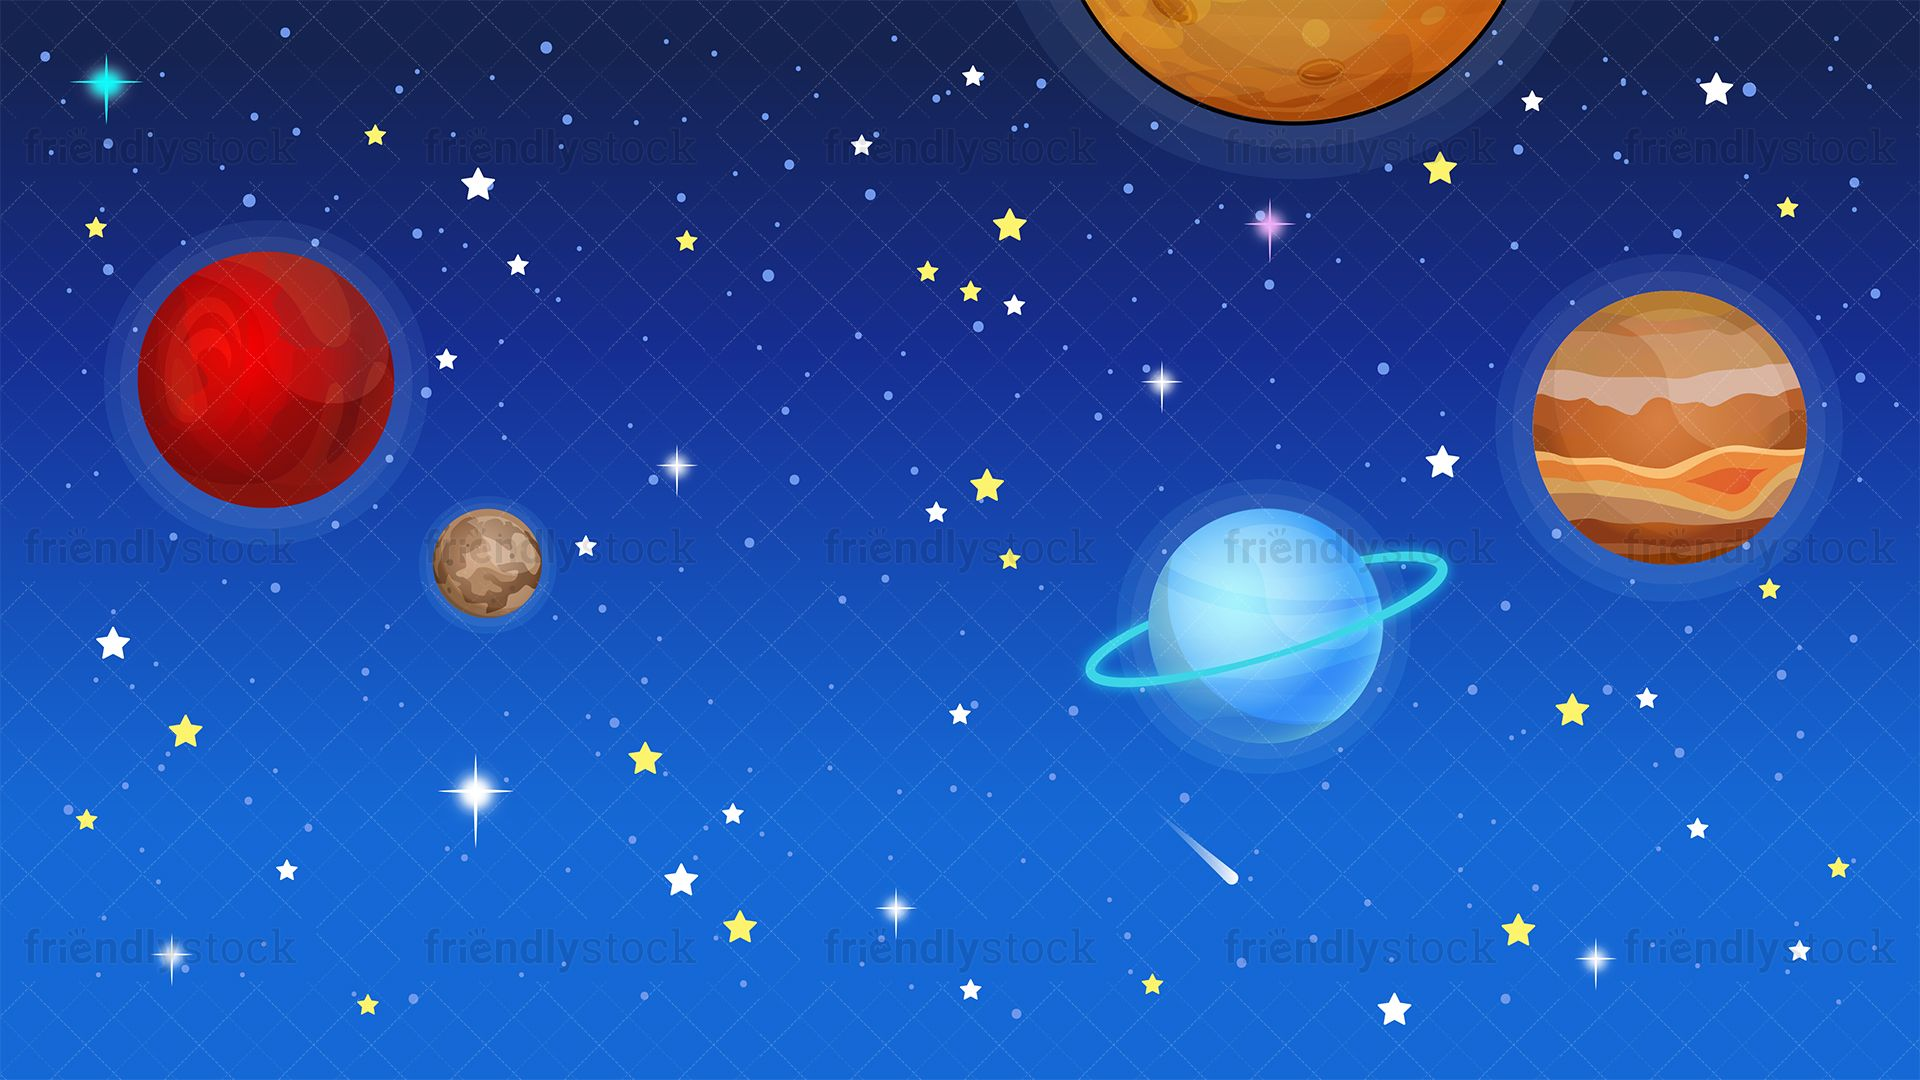 Outer Space Background Space backgrounds, Cartoon clip